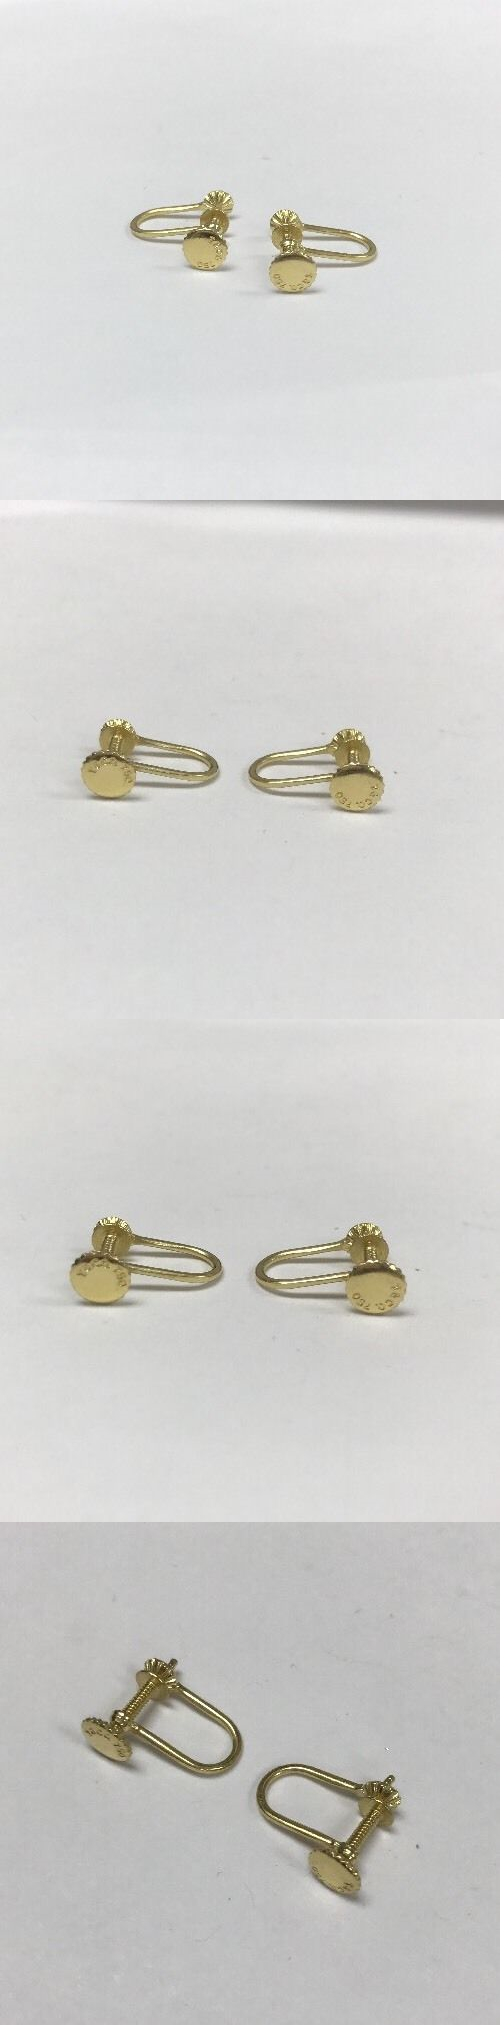 Other Fine Jewelry 505 Tiffany And Co 18k Non Pierced Omega Clip Back Earrings